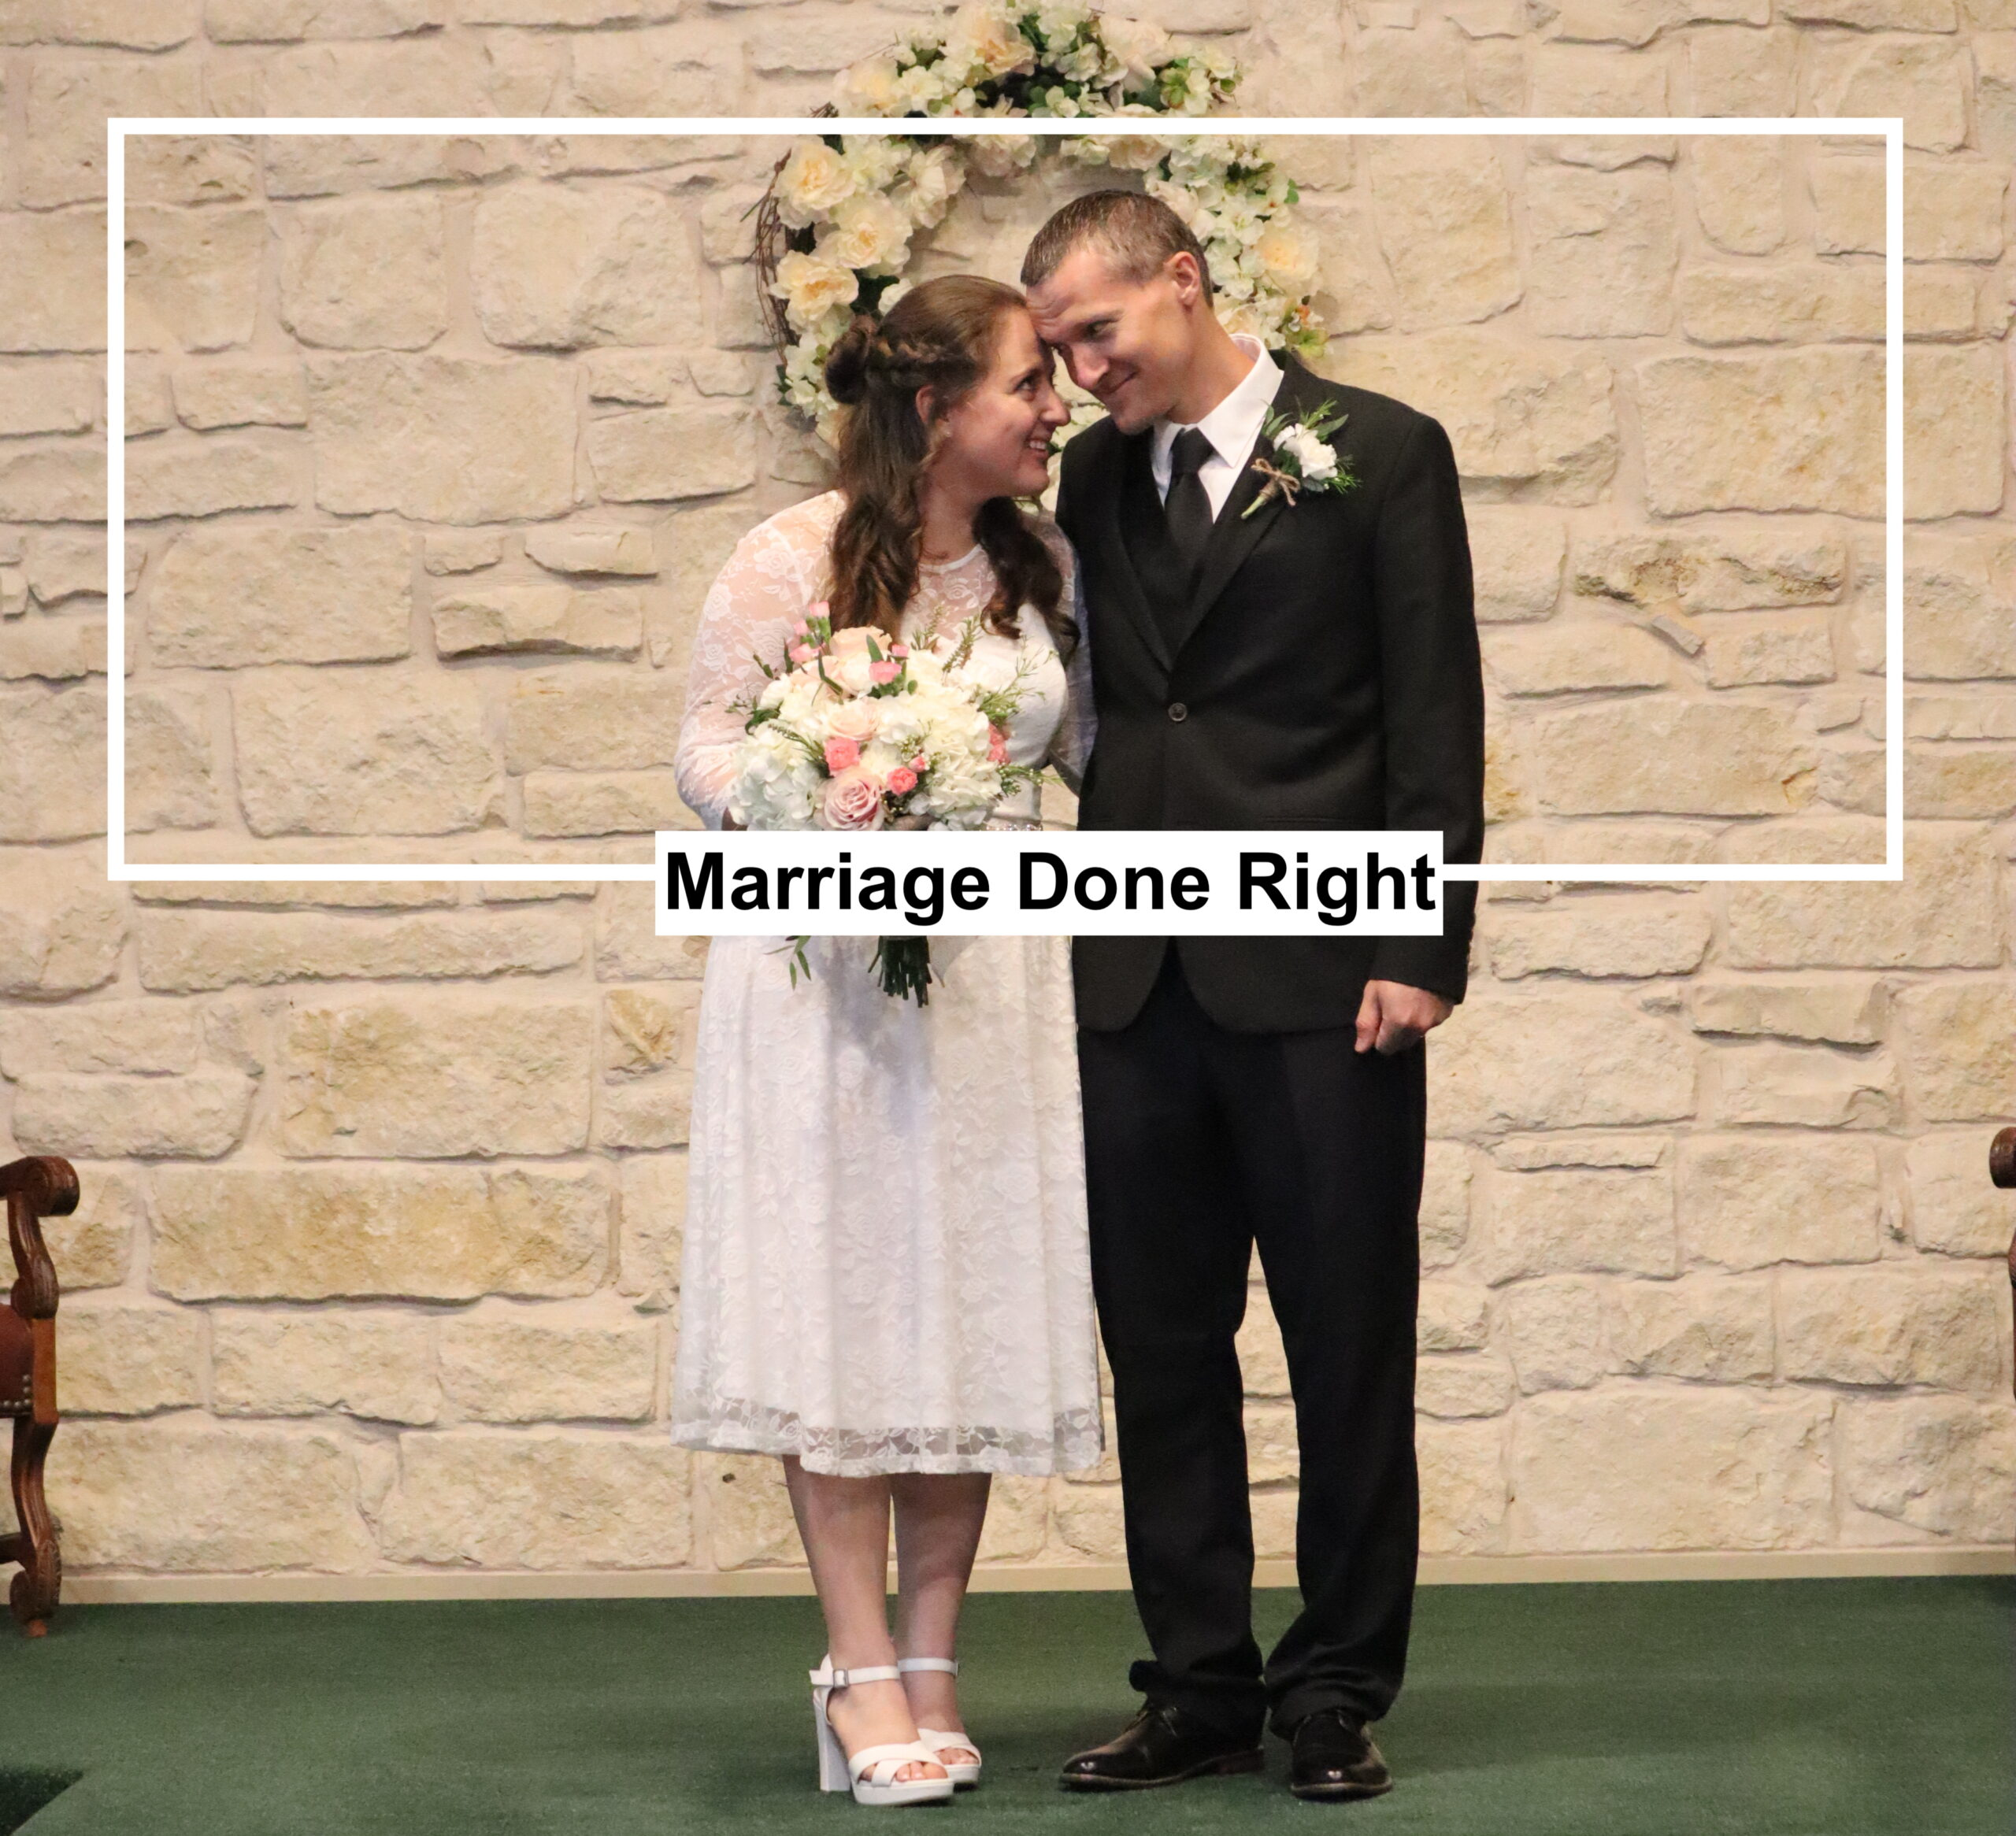 Marriage Done Right (Genesis #11)